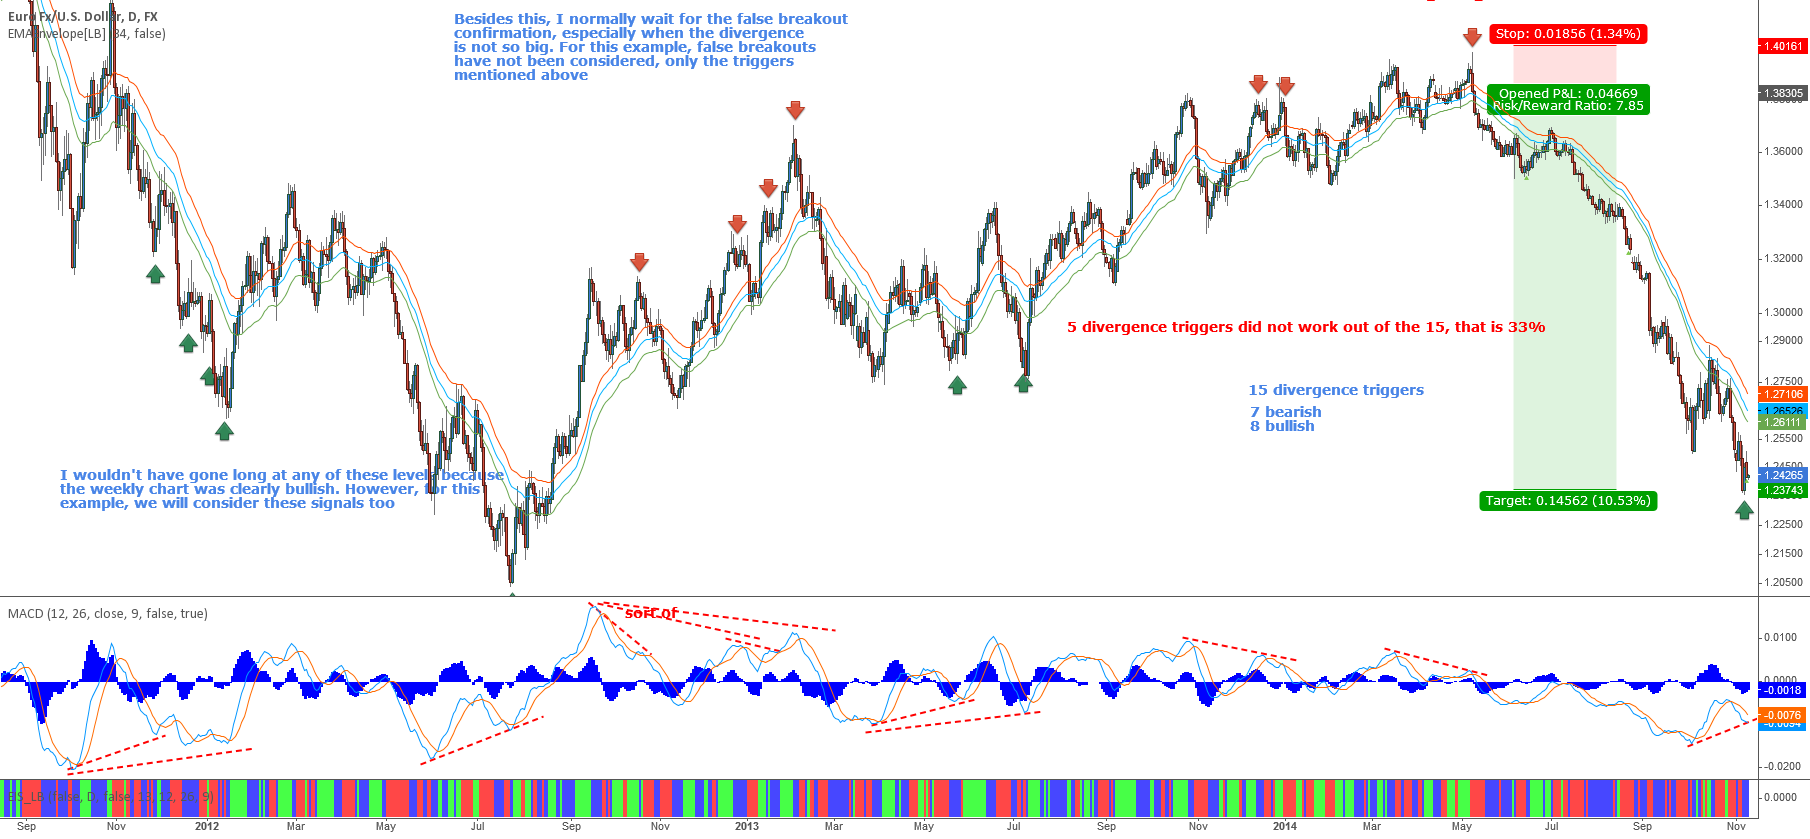 EURUSD - Sep2011 - Nov2014 divergences